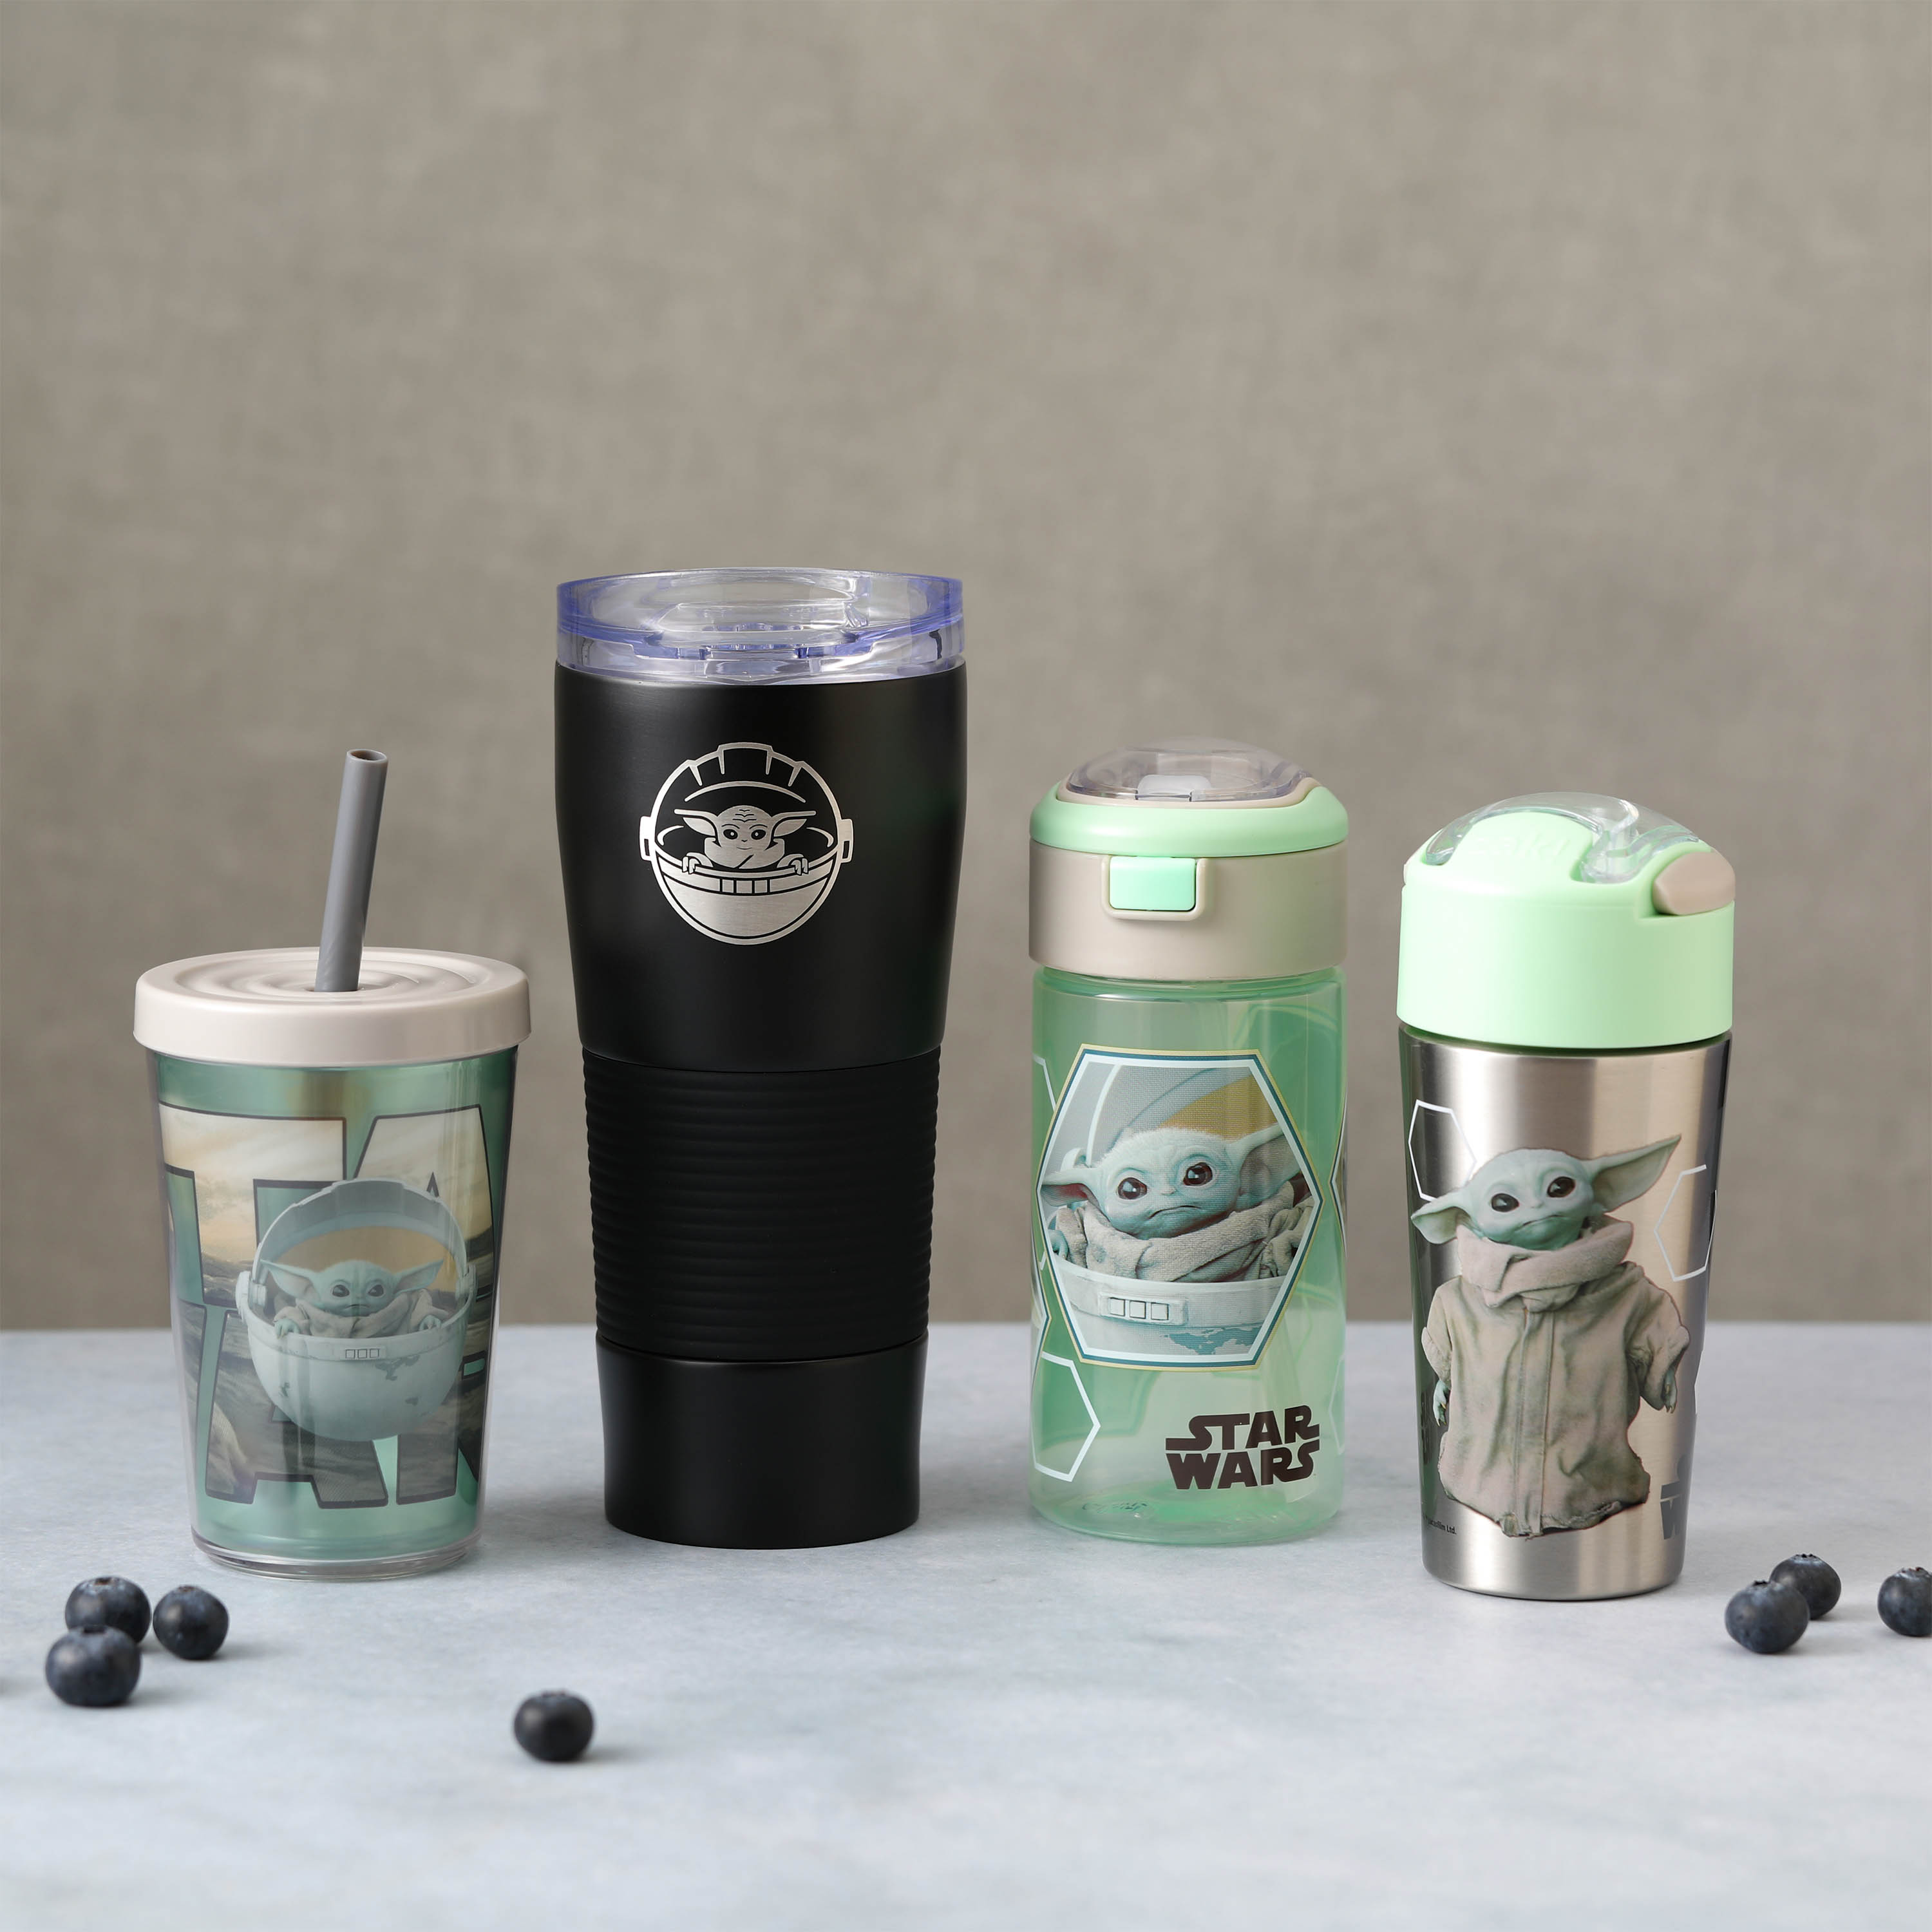 Star Wars: The Mandalorian 28 ounce Vacuum Insulated Stainless Steel Tumbler, The Child slideshow image 4